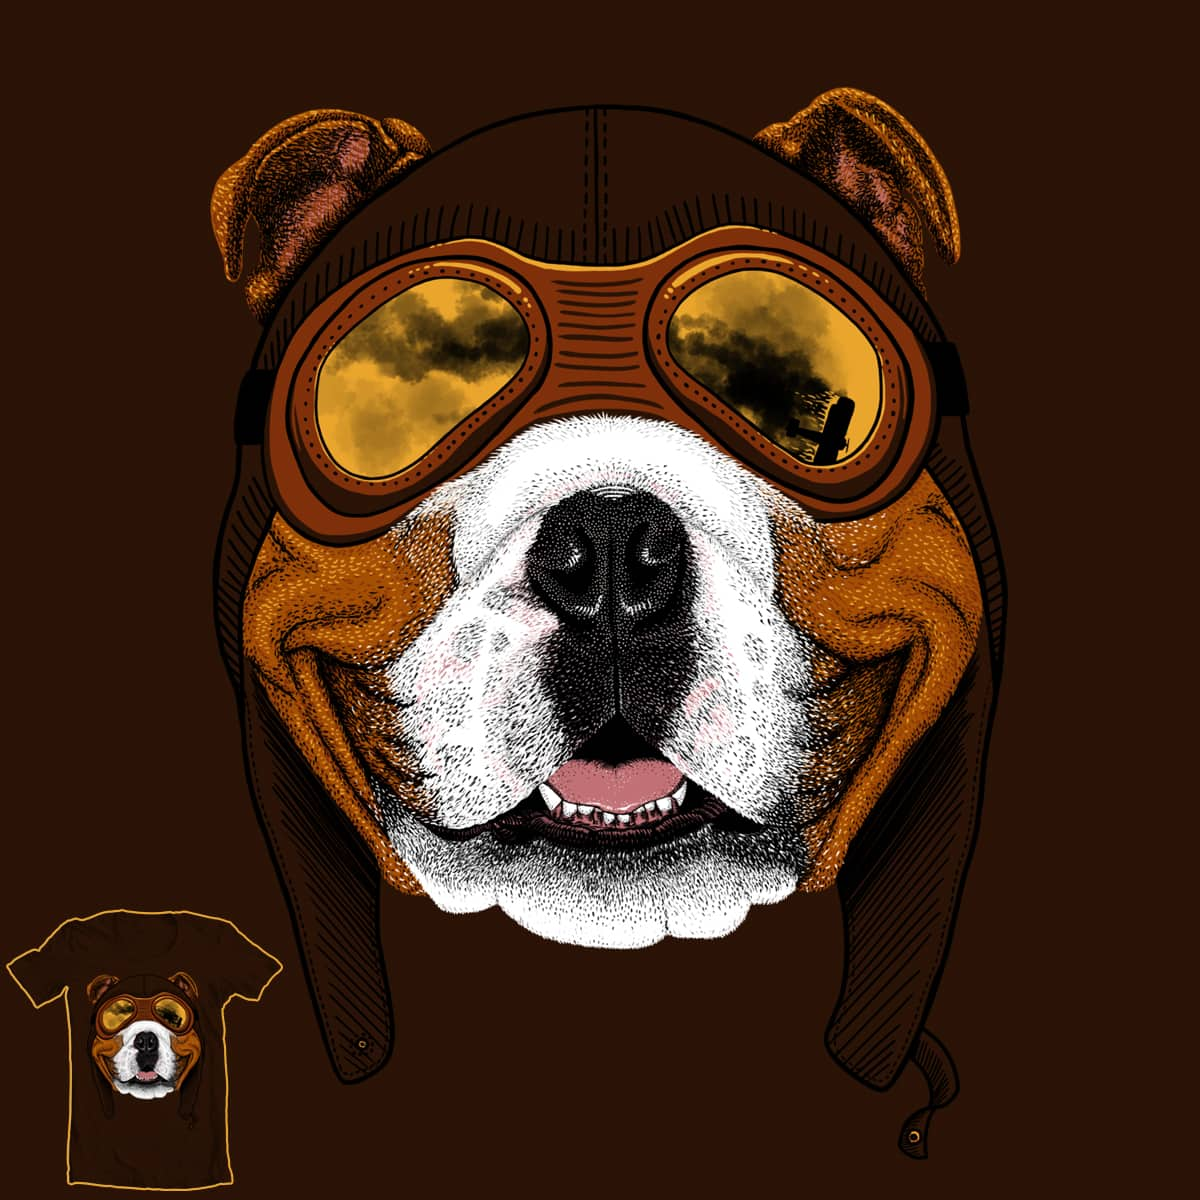 Dogfighter by sachpica on Threadless